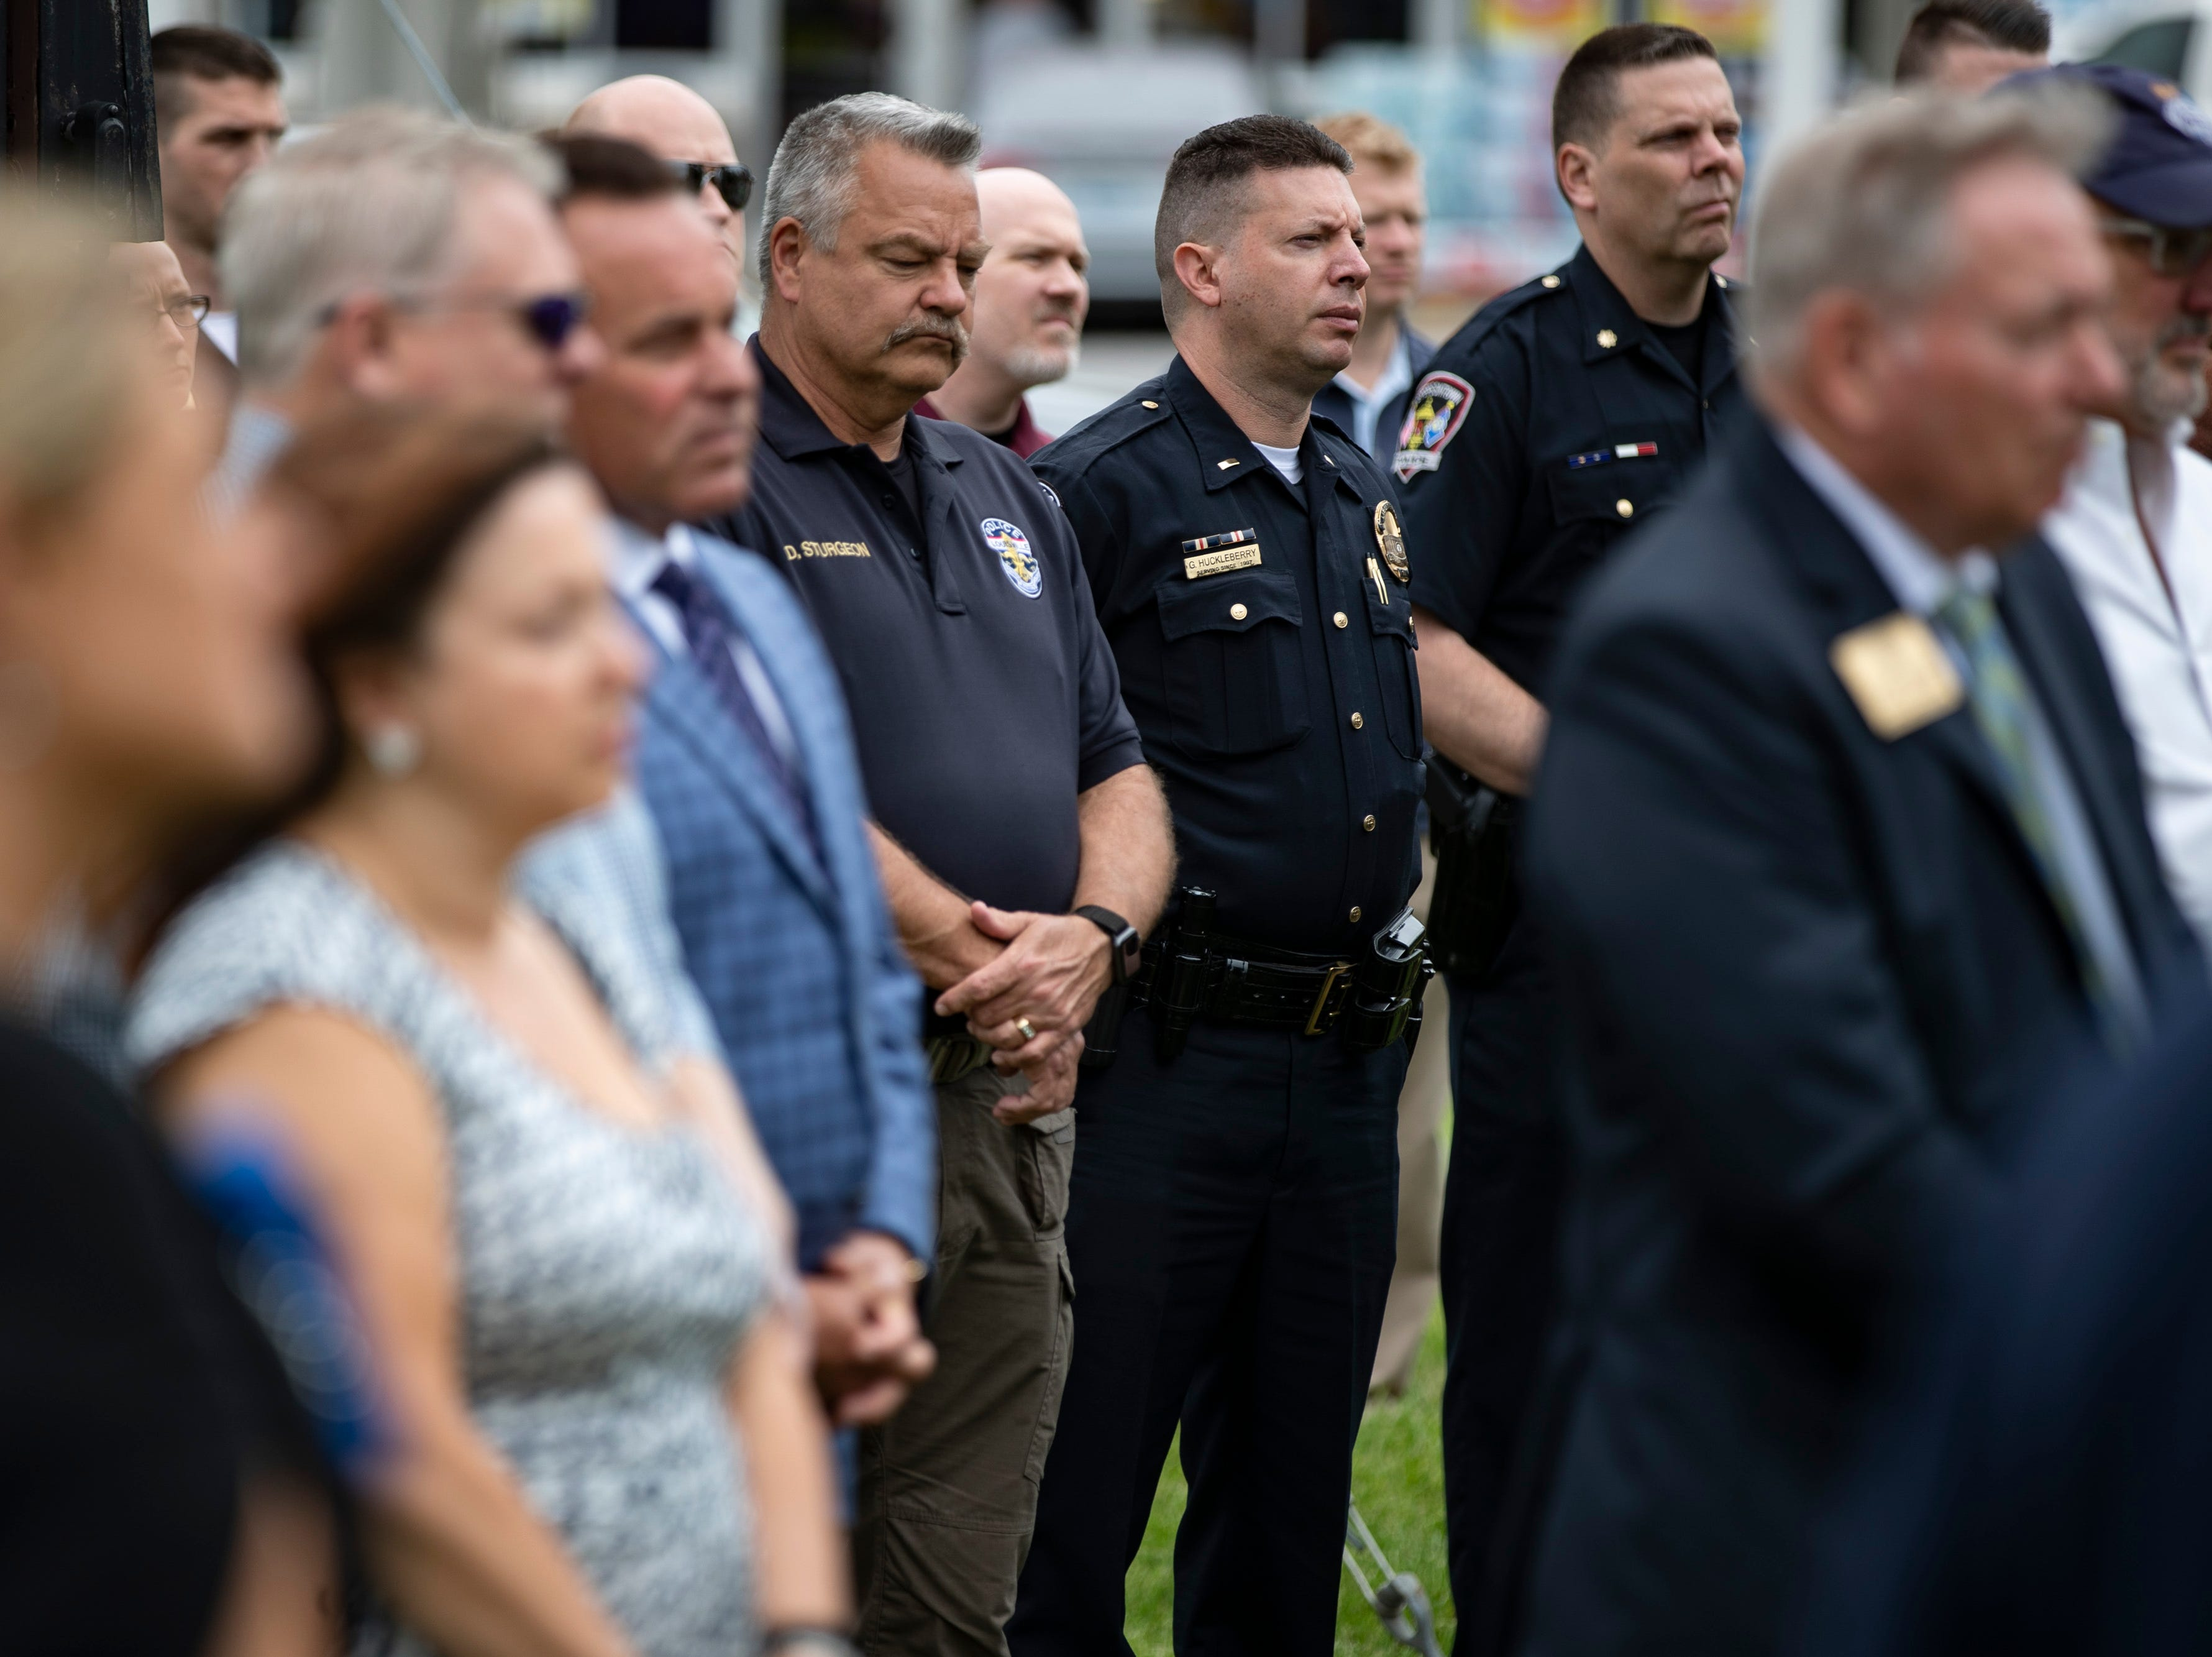 A crowd of police officers and family look on during the renaming of the corner of Stony Brook Drive and Six Mile Lane in Jeffersontown to Peter Grignon Way, in honor of the fallen officer shot during a hit and run stop in 2005. May 9, 2019